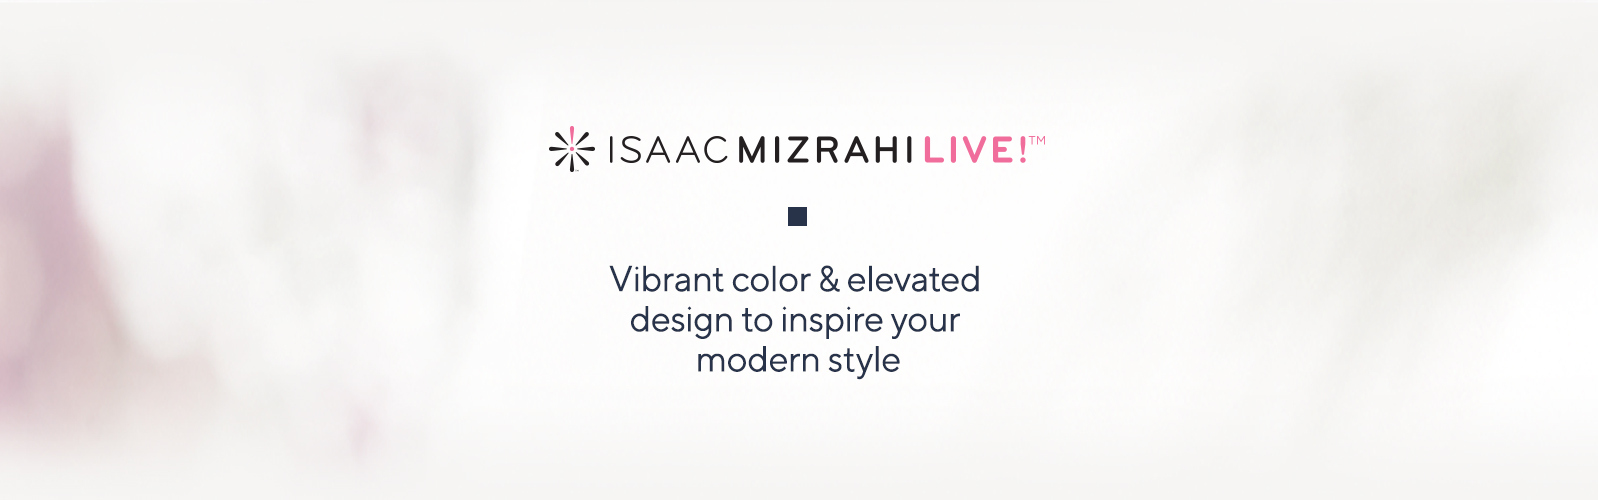 Isaac Mizrahi Live!(TM).  Vibrant color & elevated design to inspire your modern style